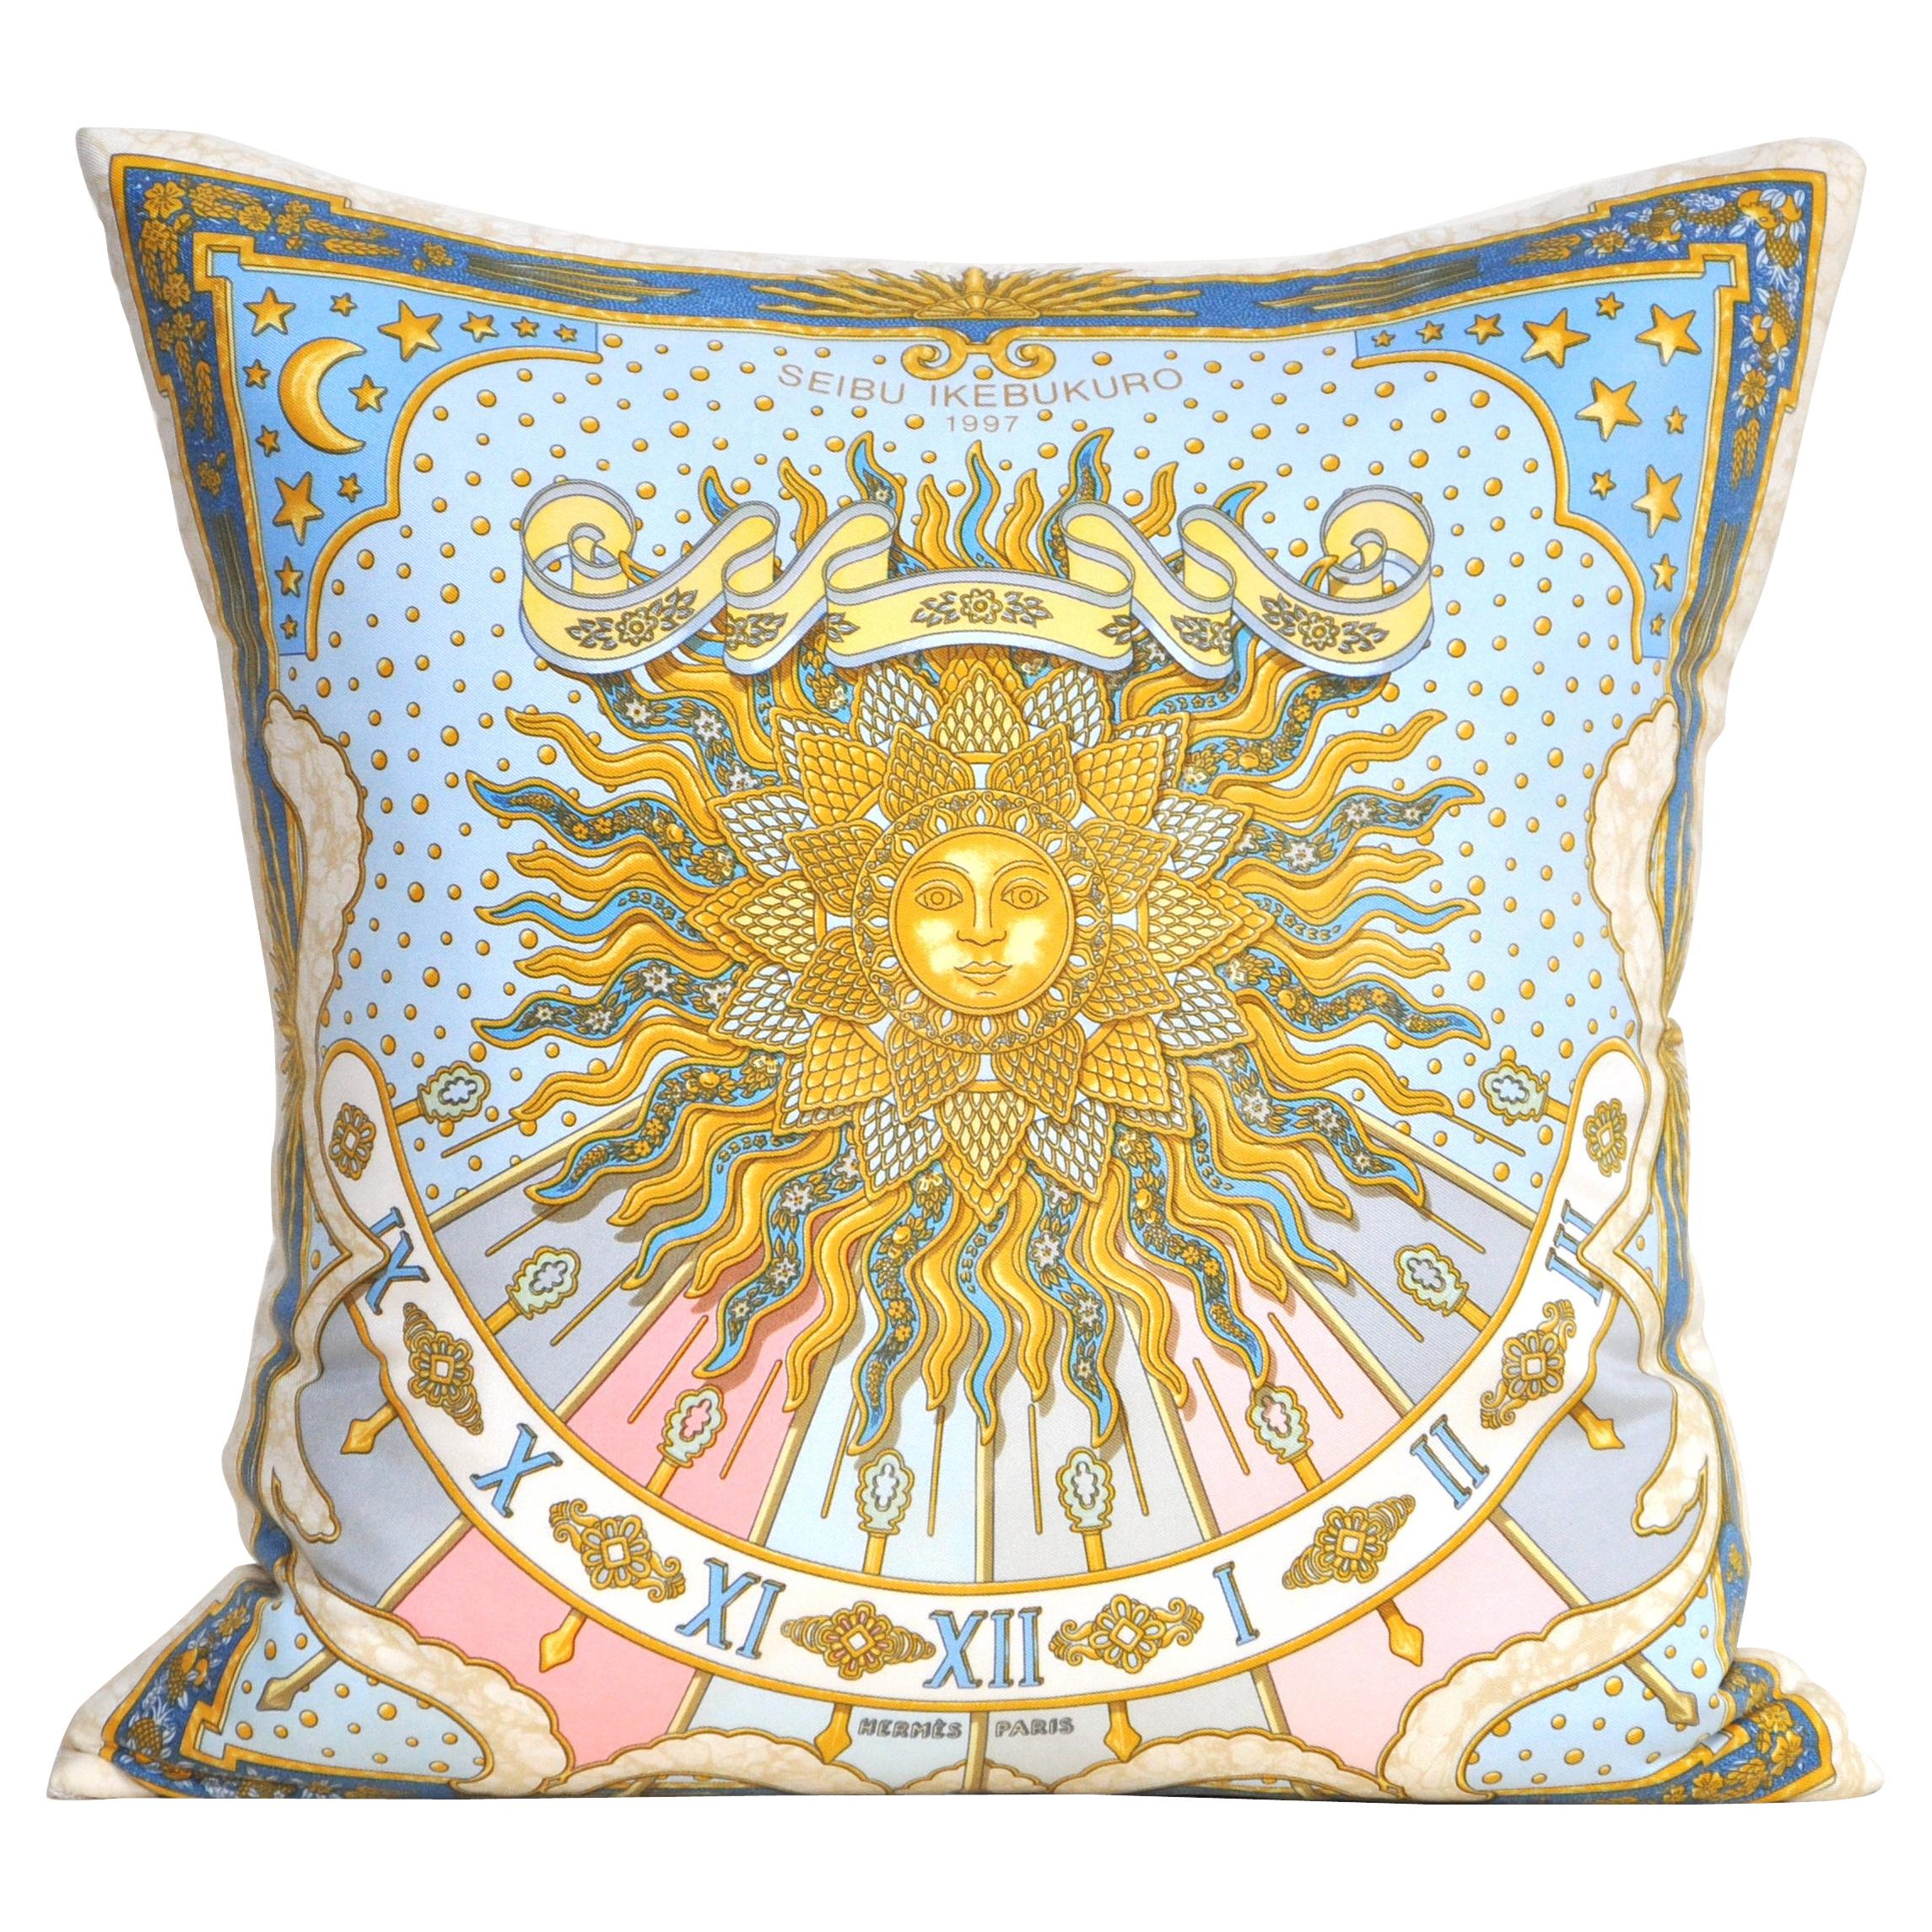 Vintage Hermes Silk Scarf and Irish Linen Luxury Cushion Pillow Blue and Gold